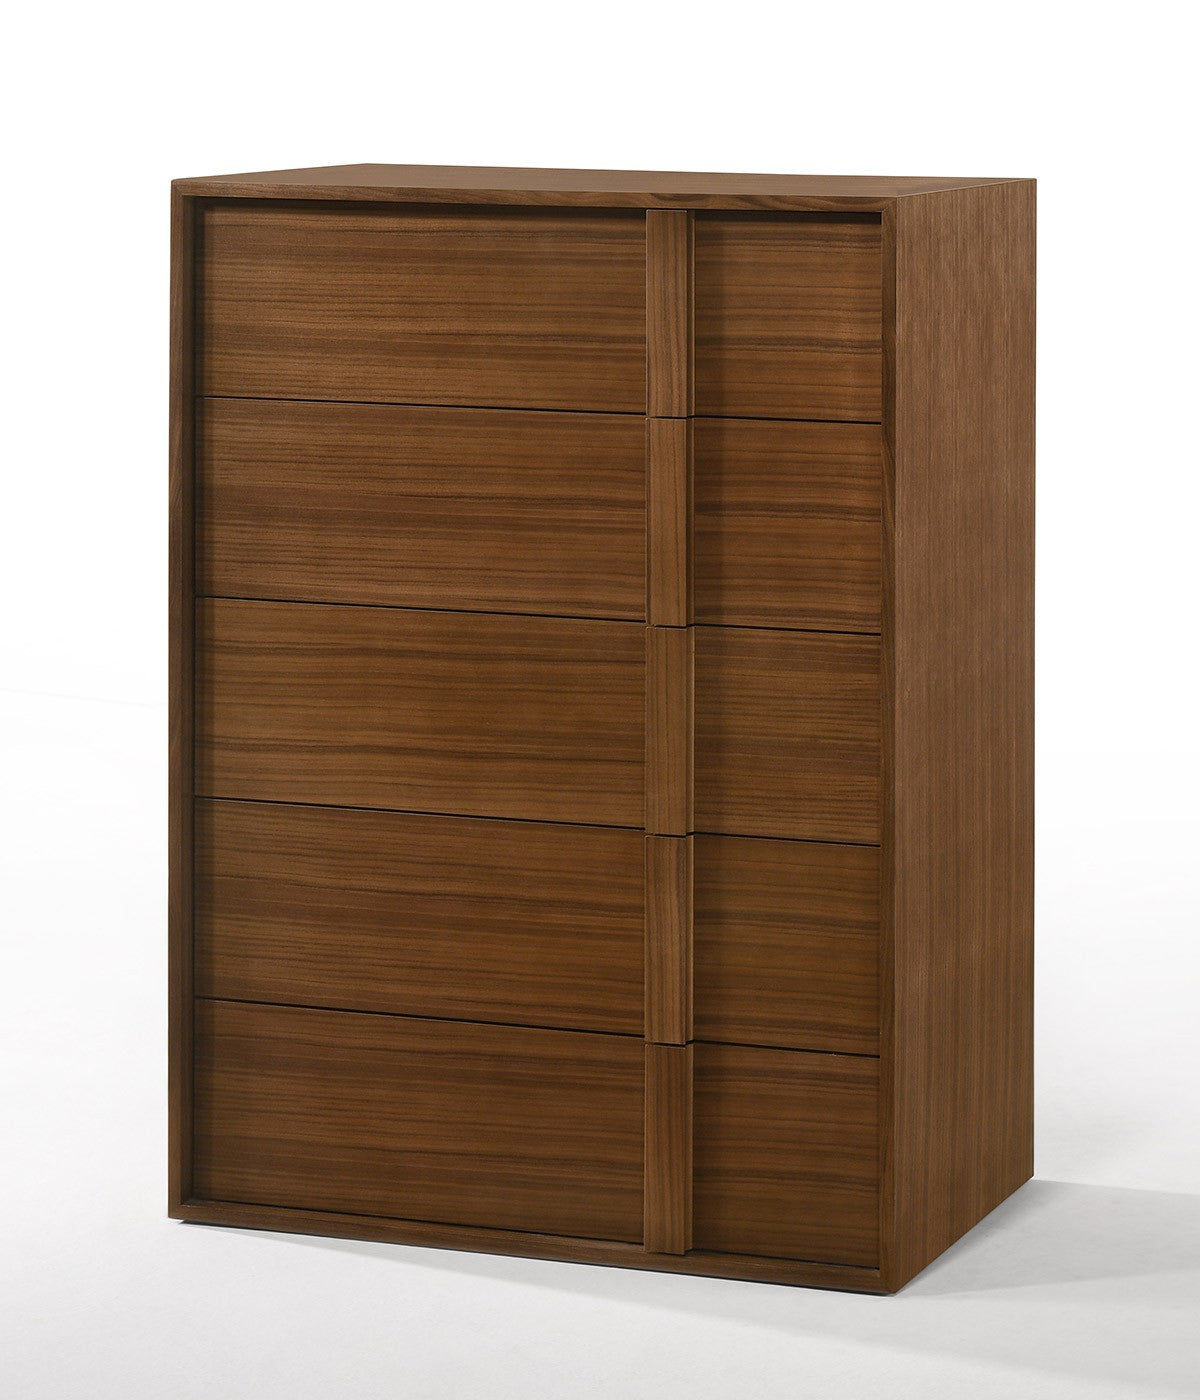 Nova Domus Berlin - Modern Walnut Chest